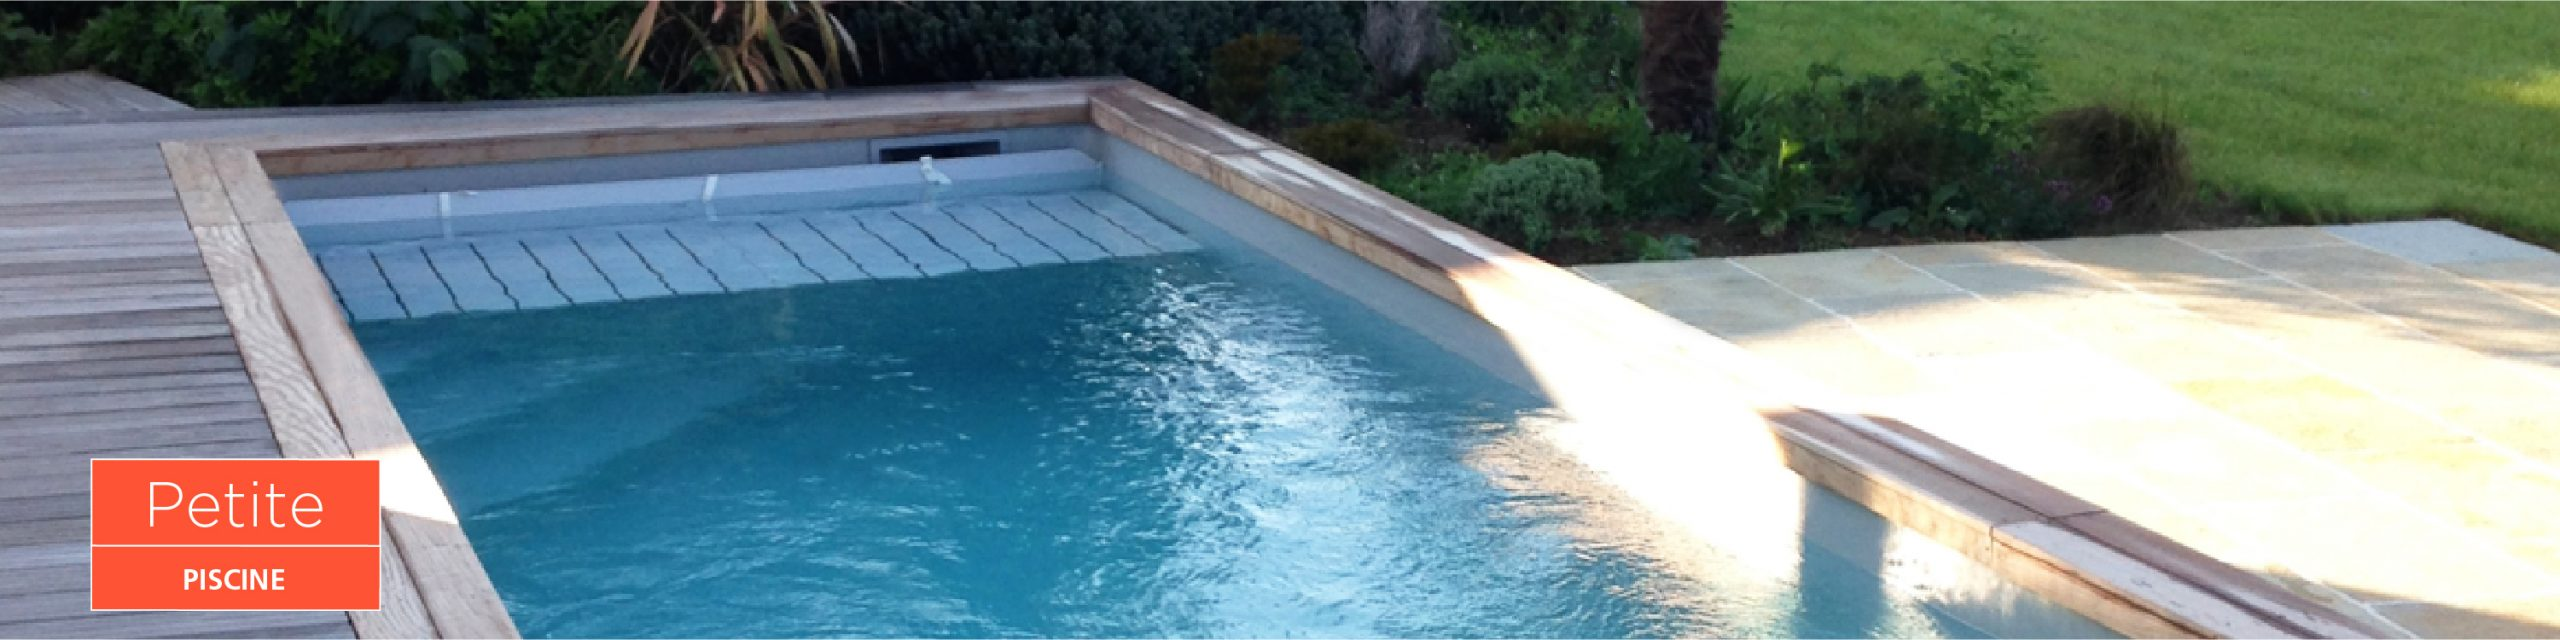 Everblue L Inspiration : La Petite Piscine Par Everblue destiné Piscine Everblue